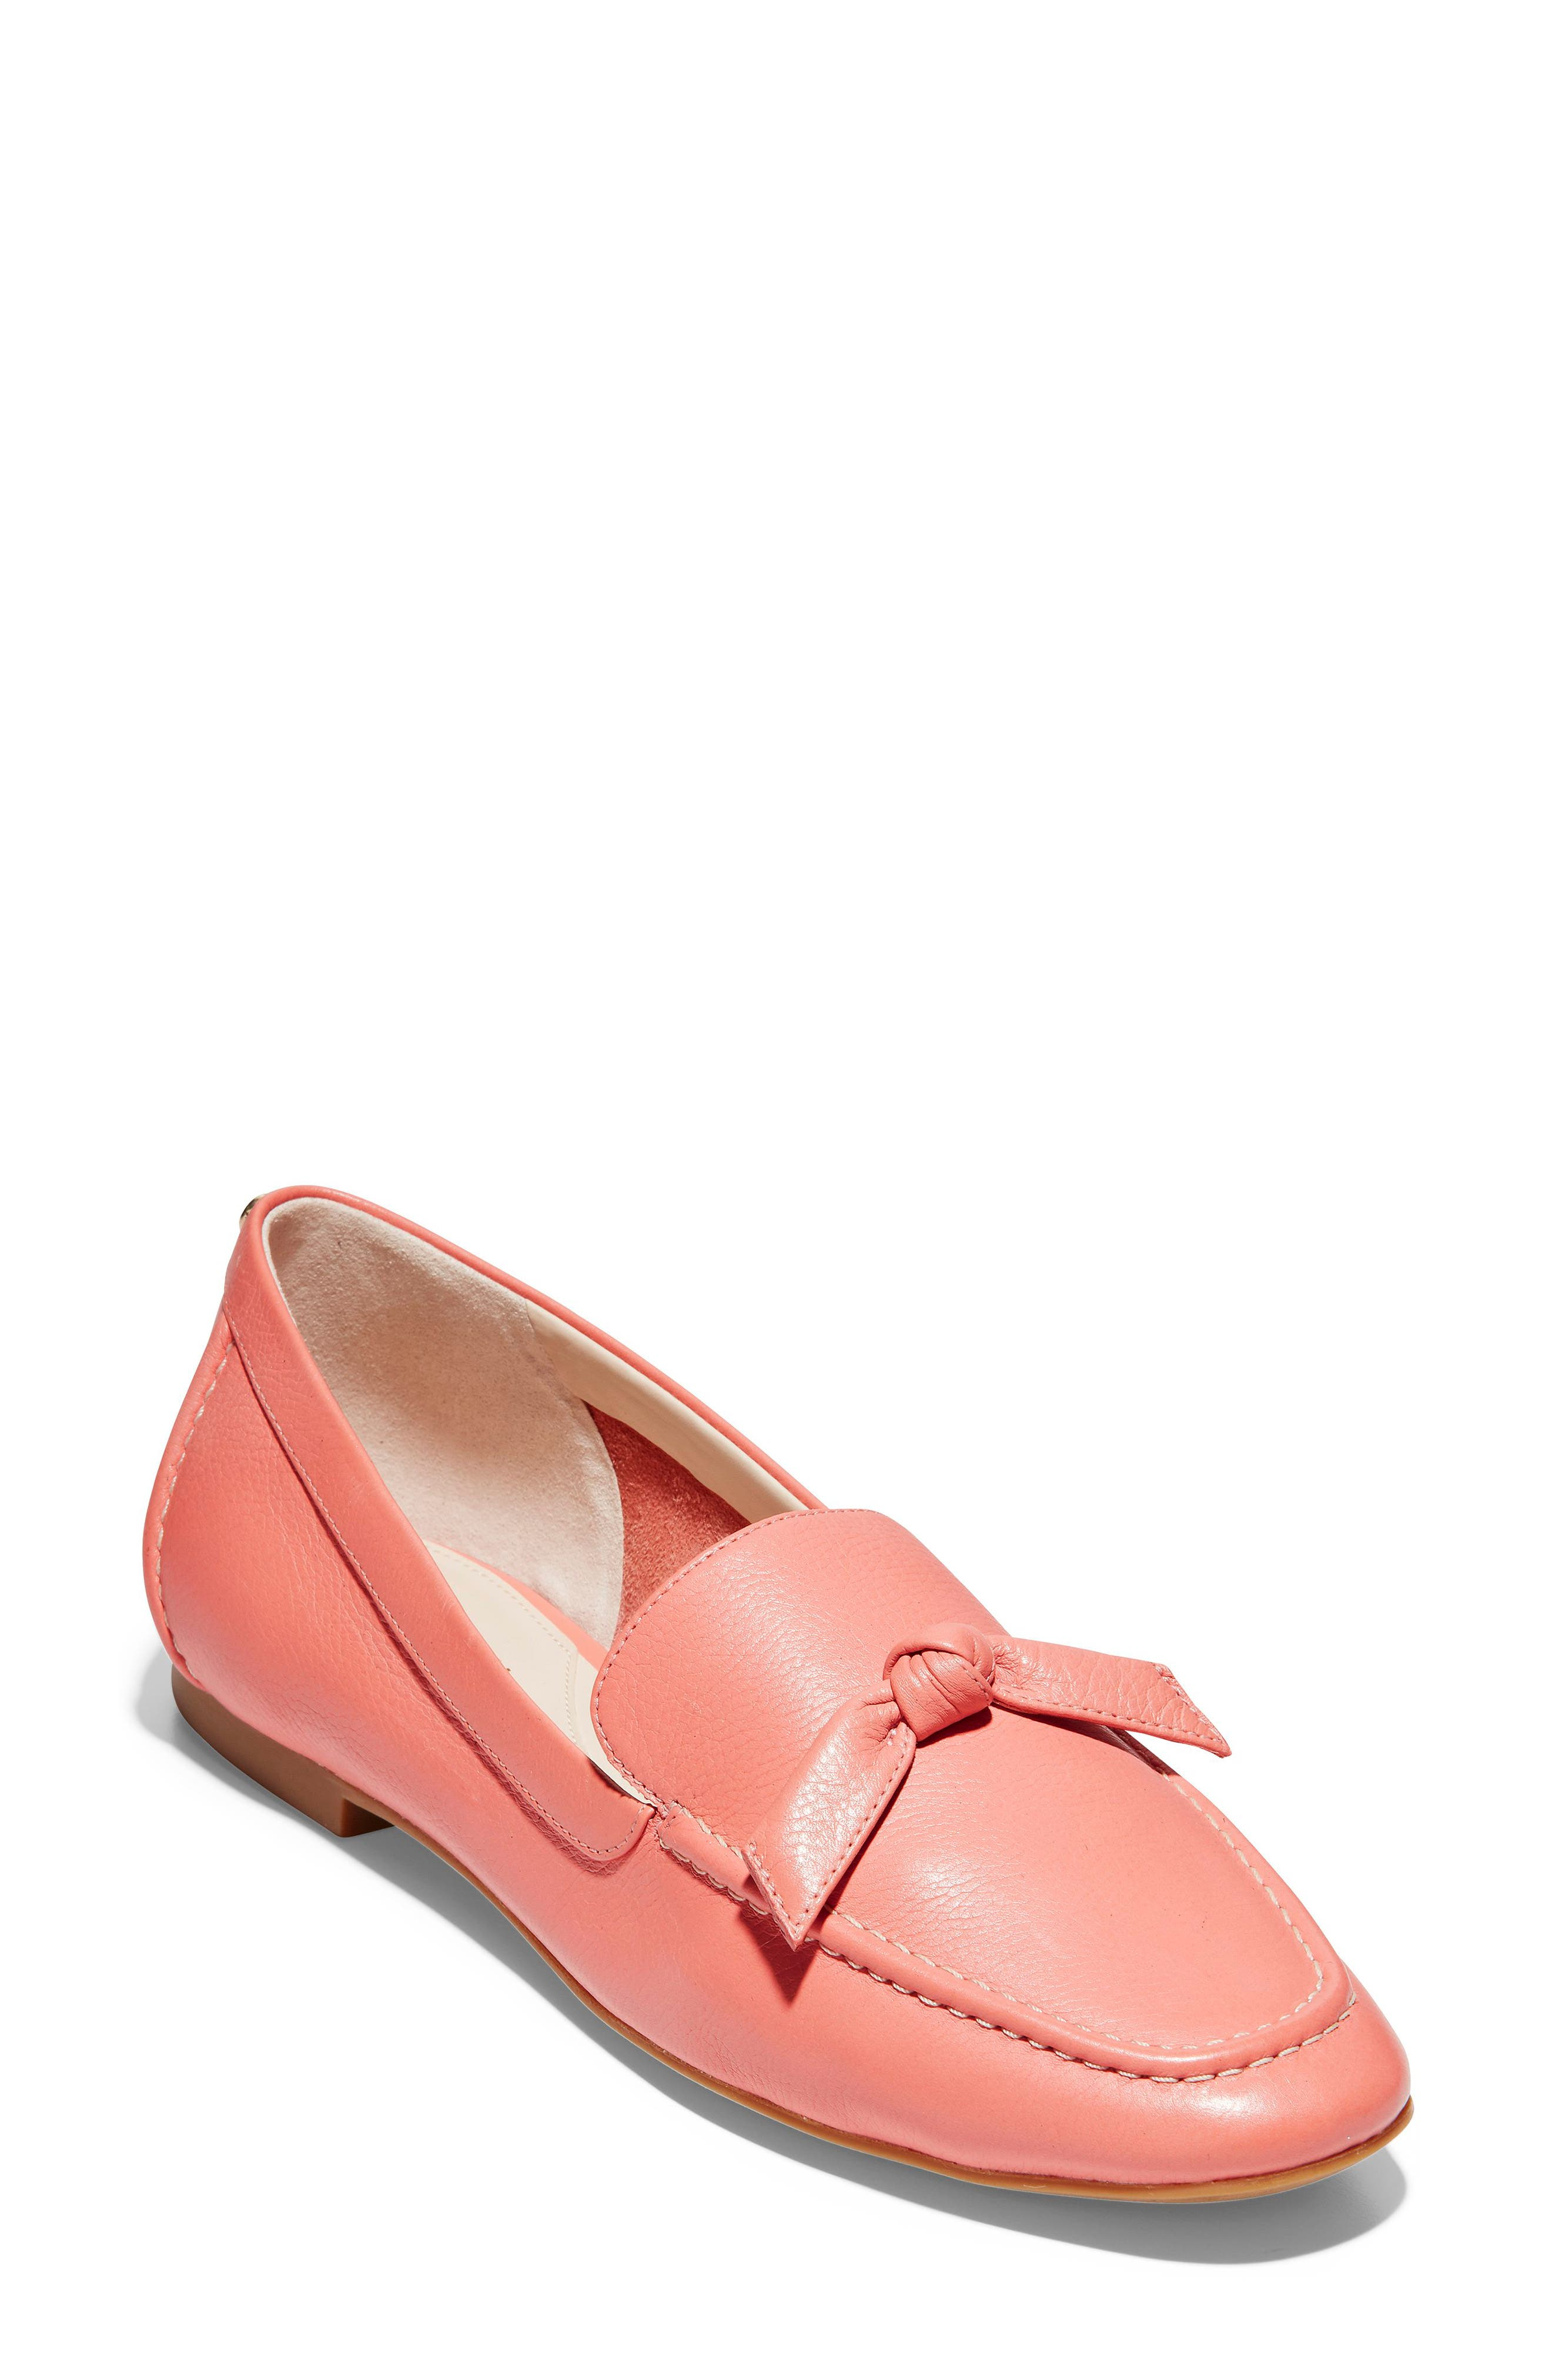 Image of Cole Haan Caddie Bow Loafer